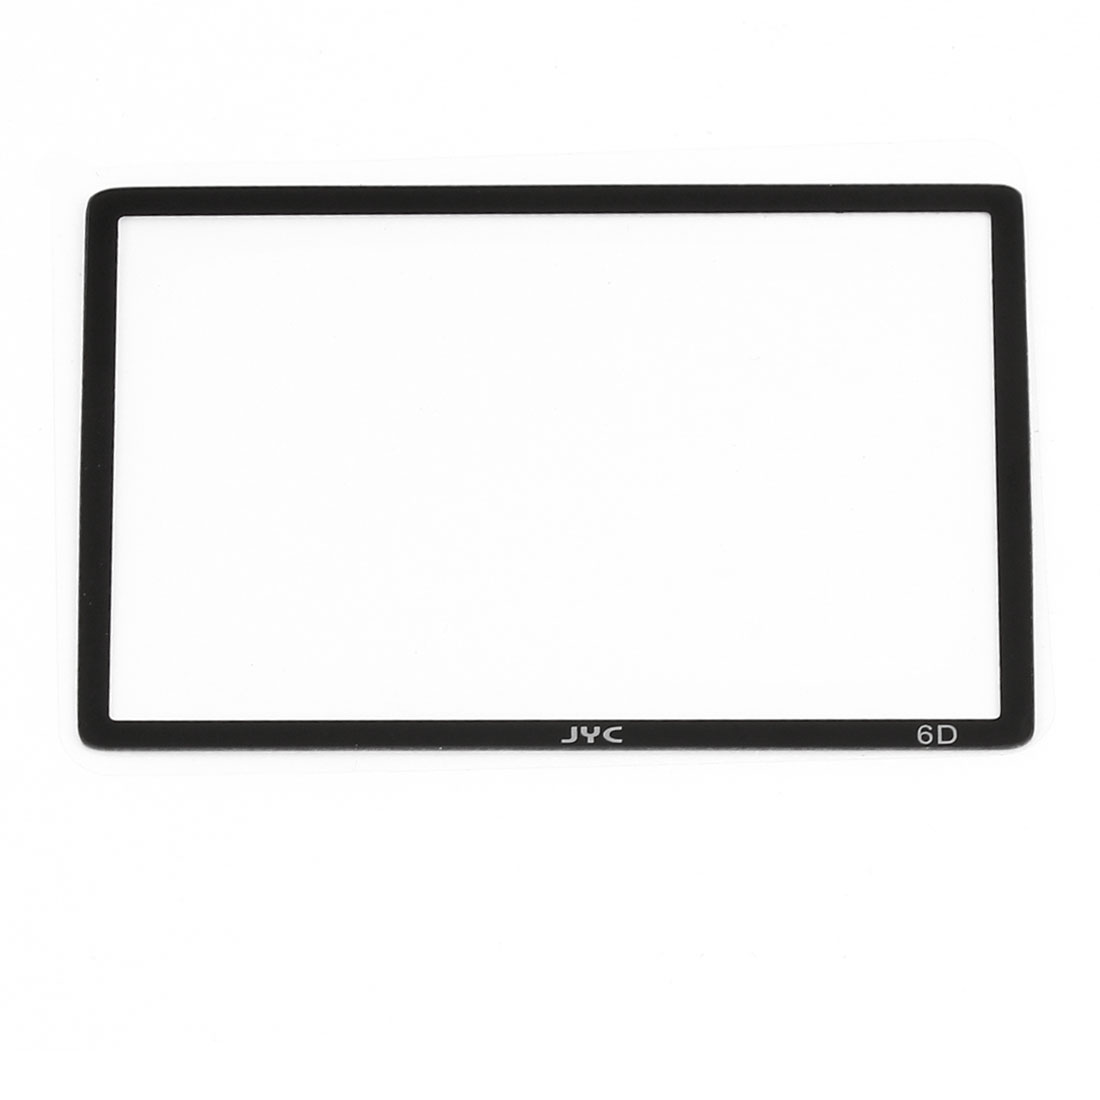 "Digital Camera LCD Screen Optical Glass Protector 2.8"" x 2"" for Canon 6D"